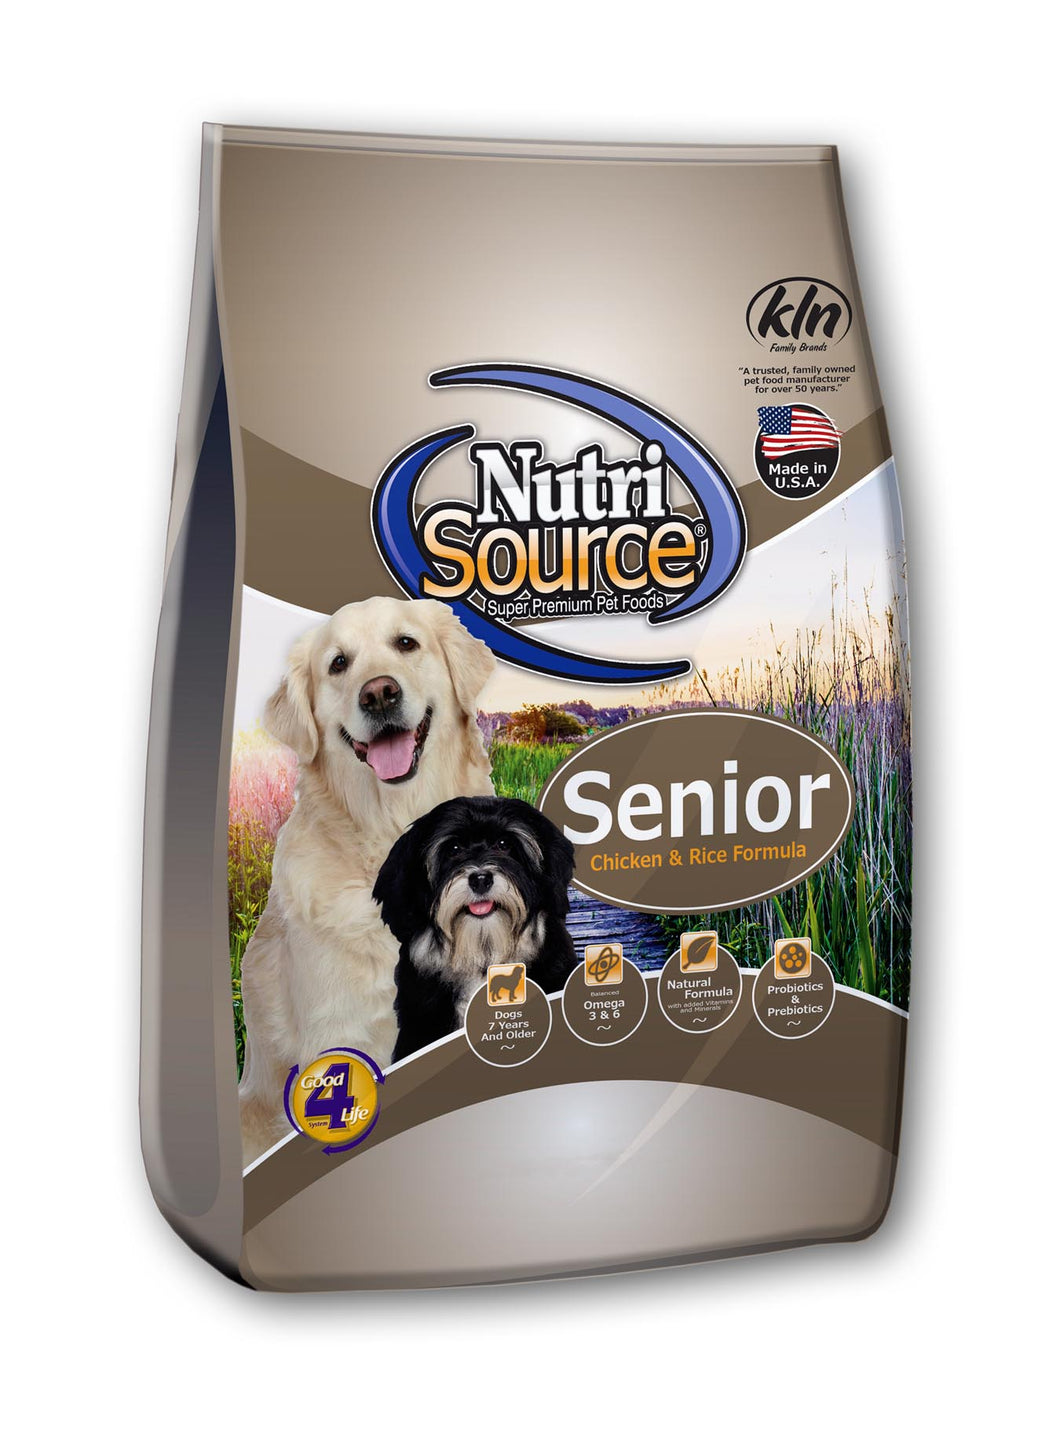 NutriSource Senior - Natural Dawg Cuisine